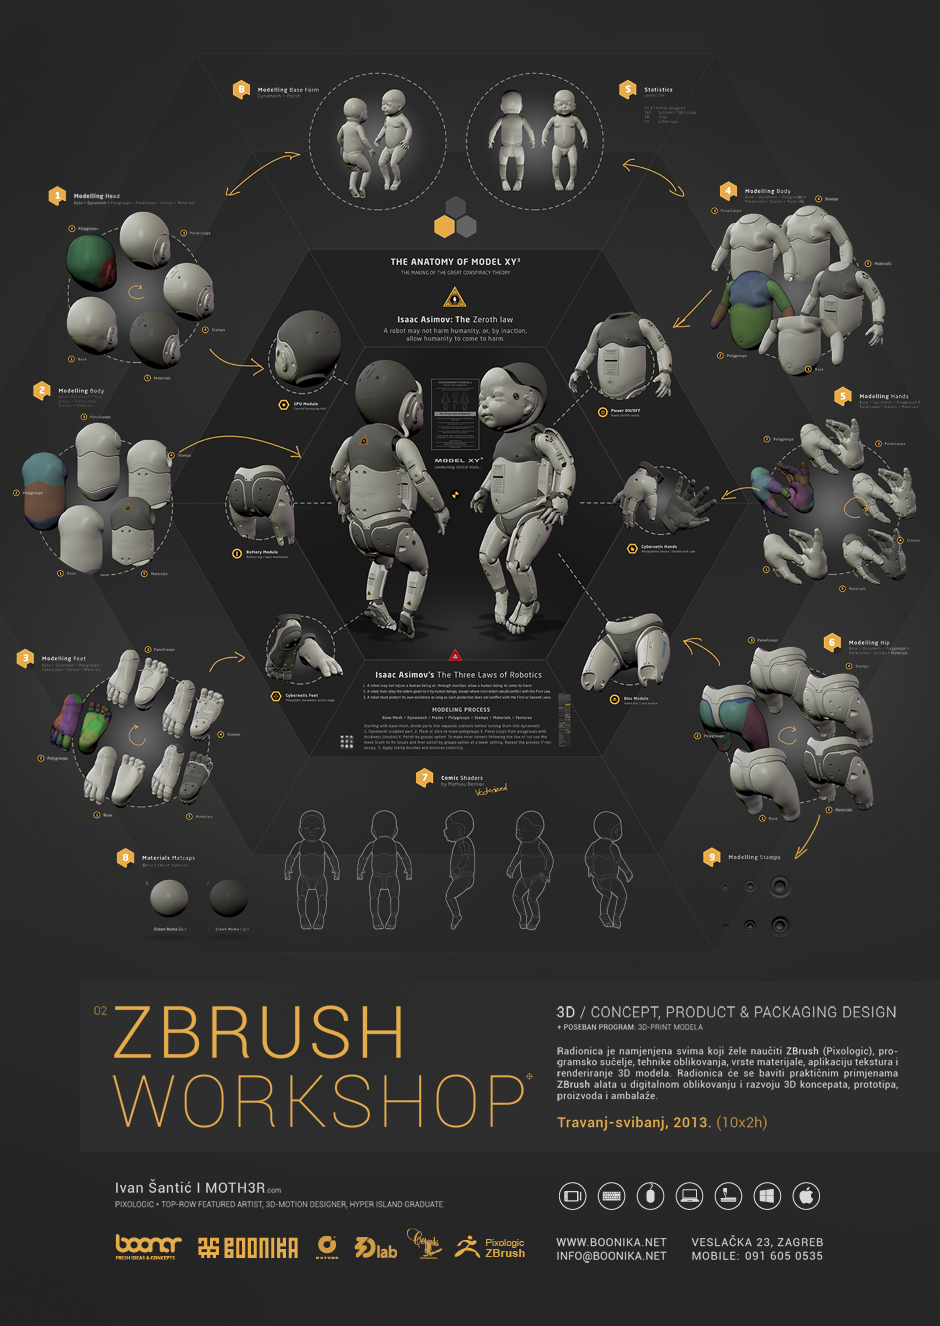 ZBrush Workshop